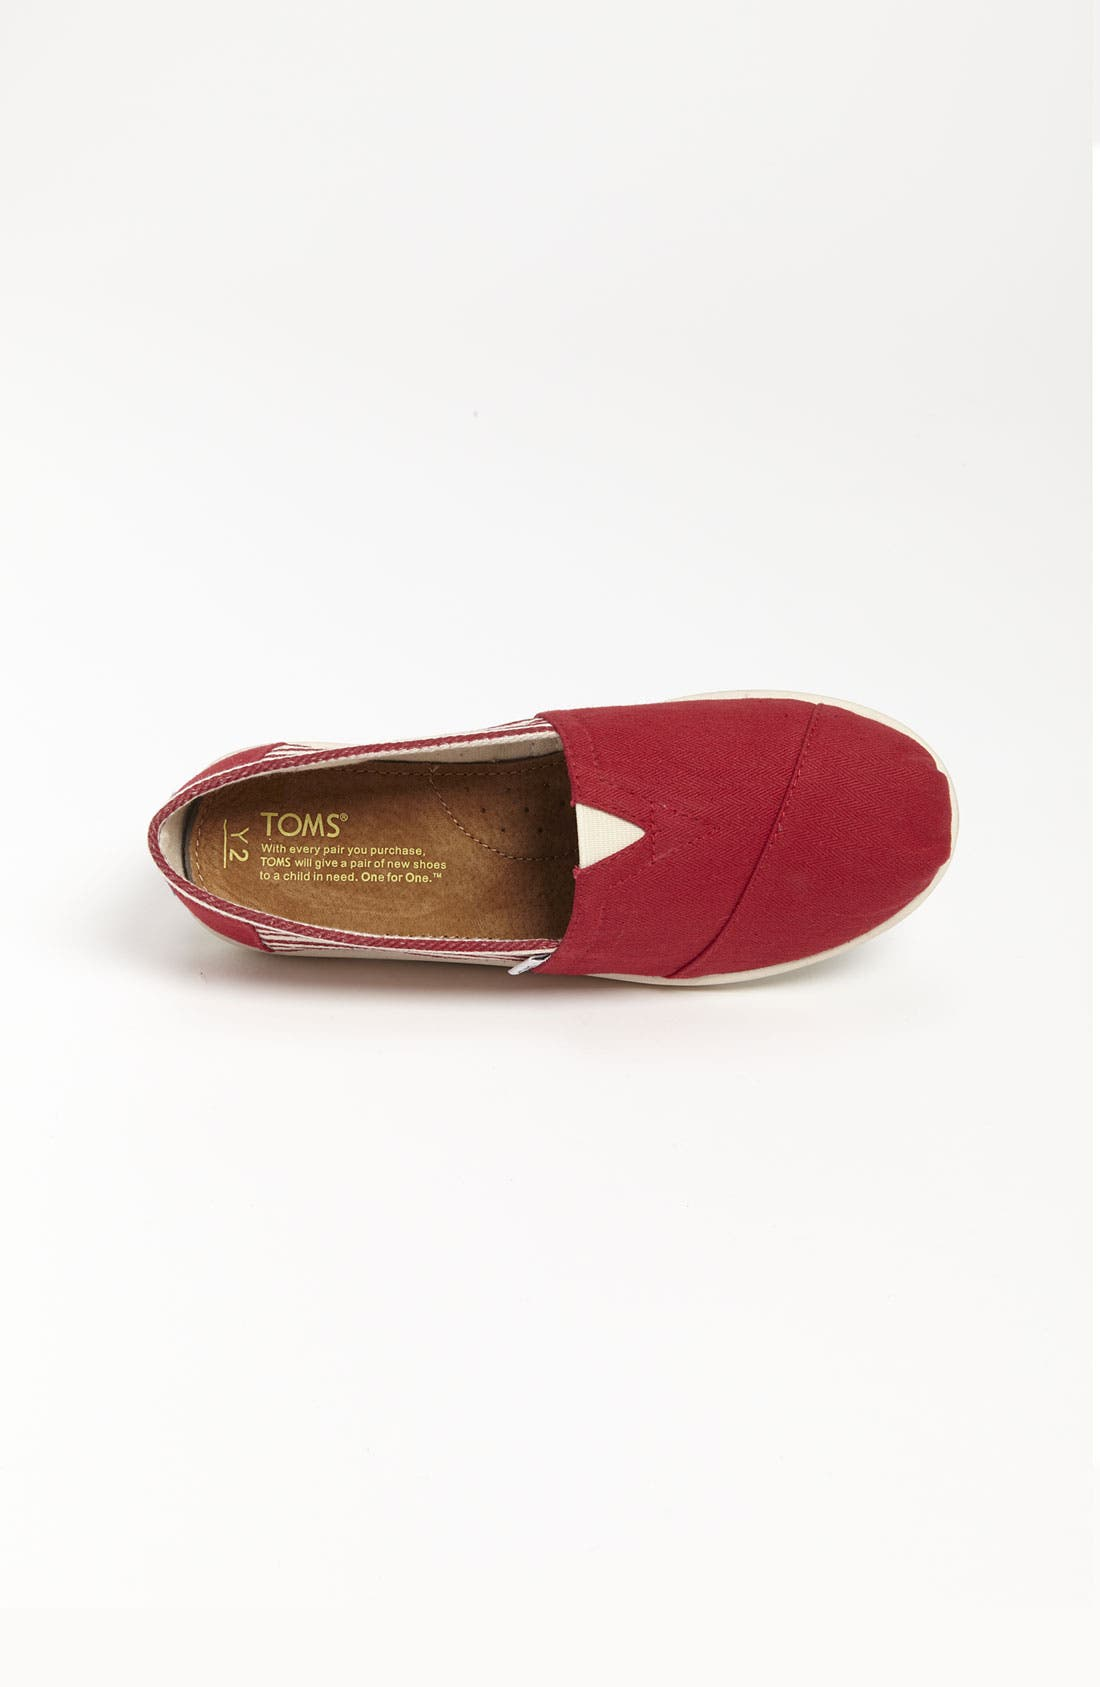 Alternate Image 3  - TOMS 'Classic Youth - University' Canvas Slip-On (Toddler, Little Kid & Big Kid) (Nordstrom Exclusive)